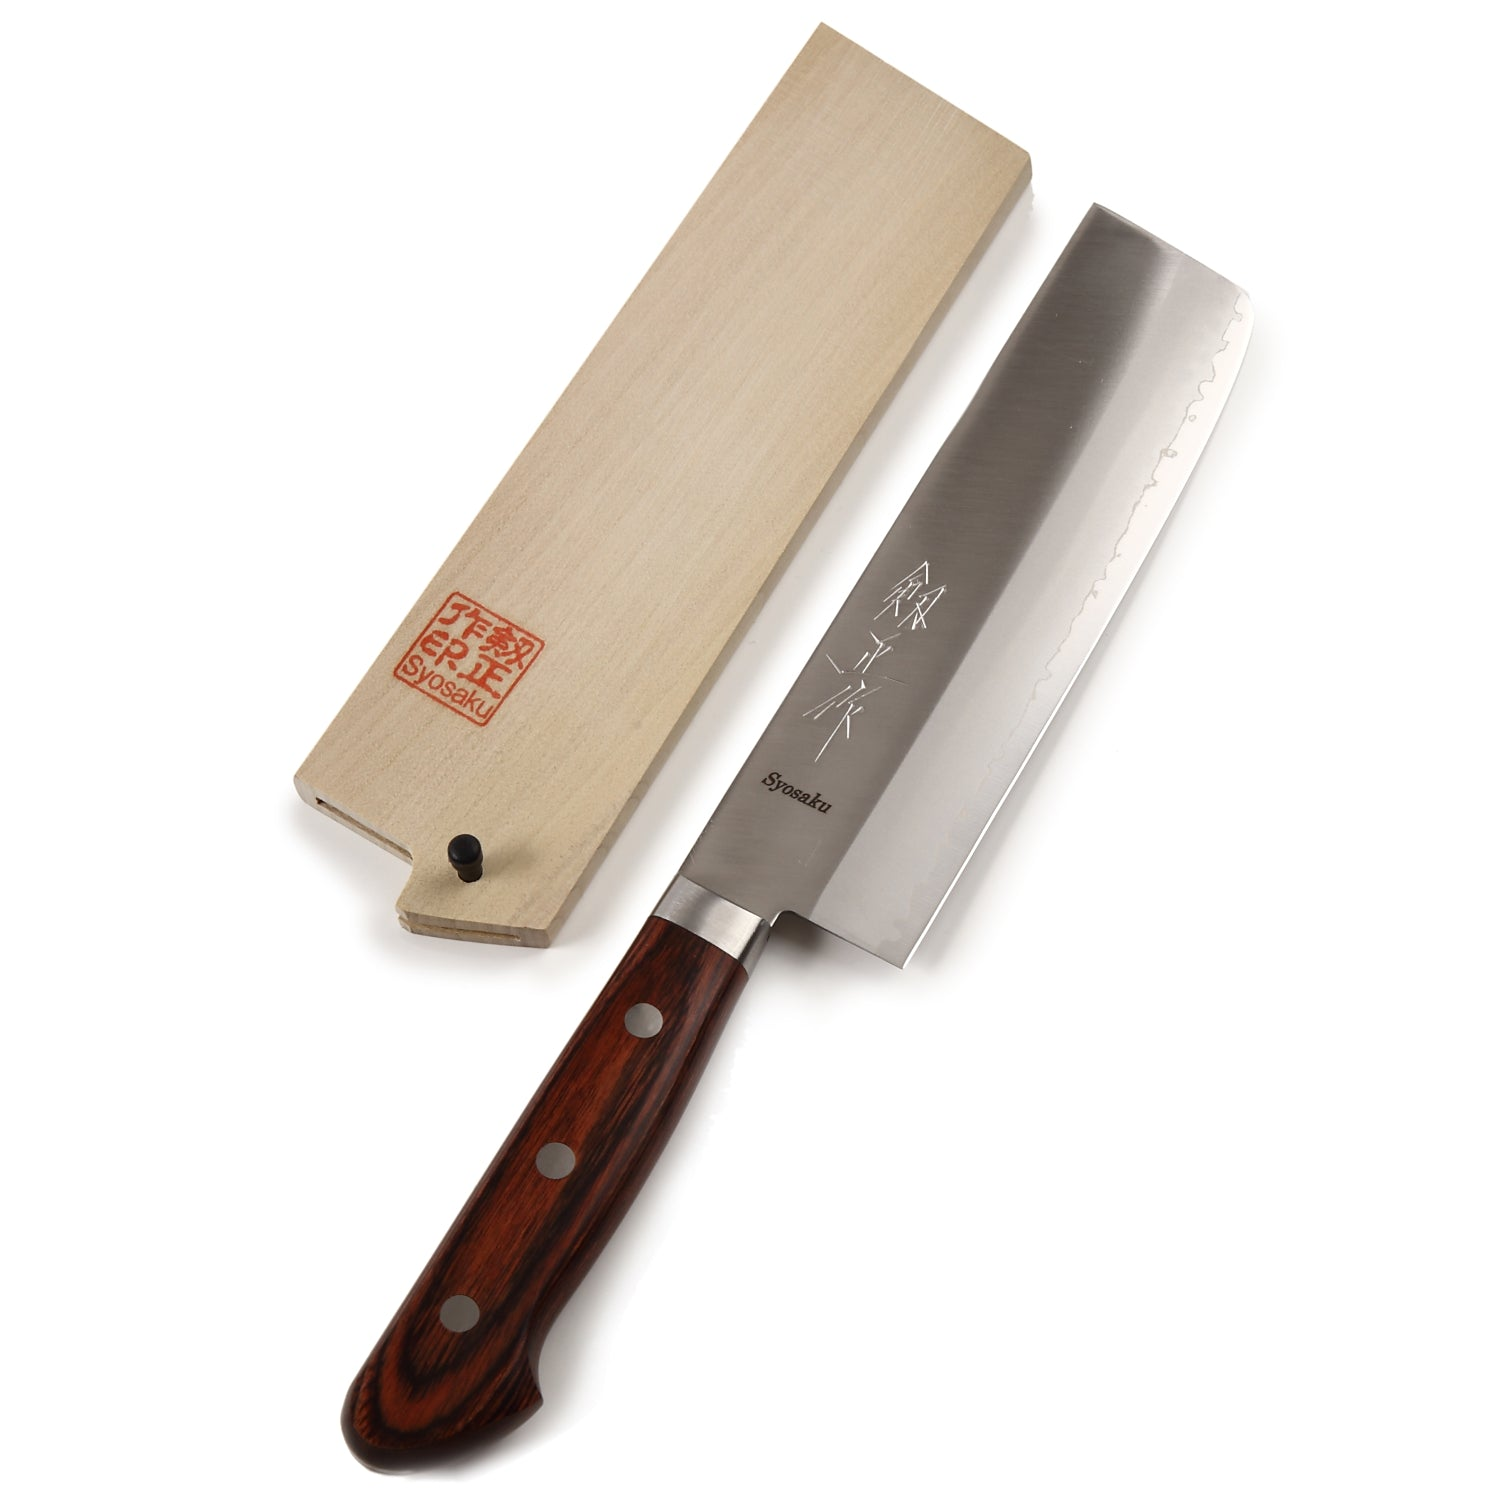 Syosaku Japanese Vegetable Knife VG-1 Gold Stainless Steel Mahogany Handle, Nakiri 6.3-inch (160mm) with Magnolia Wood Sheath Saya Cover